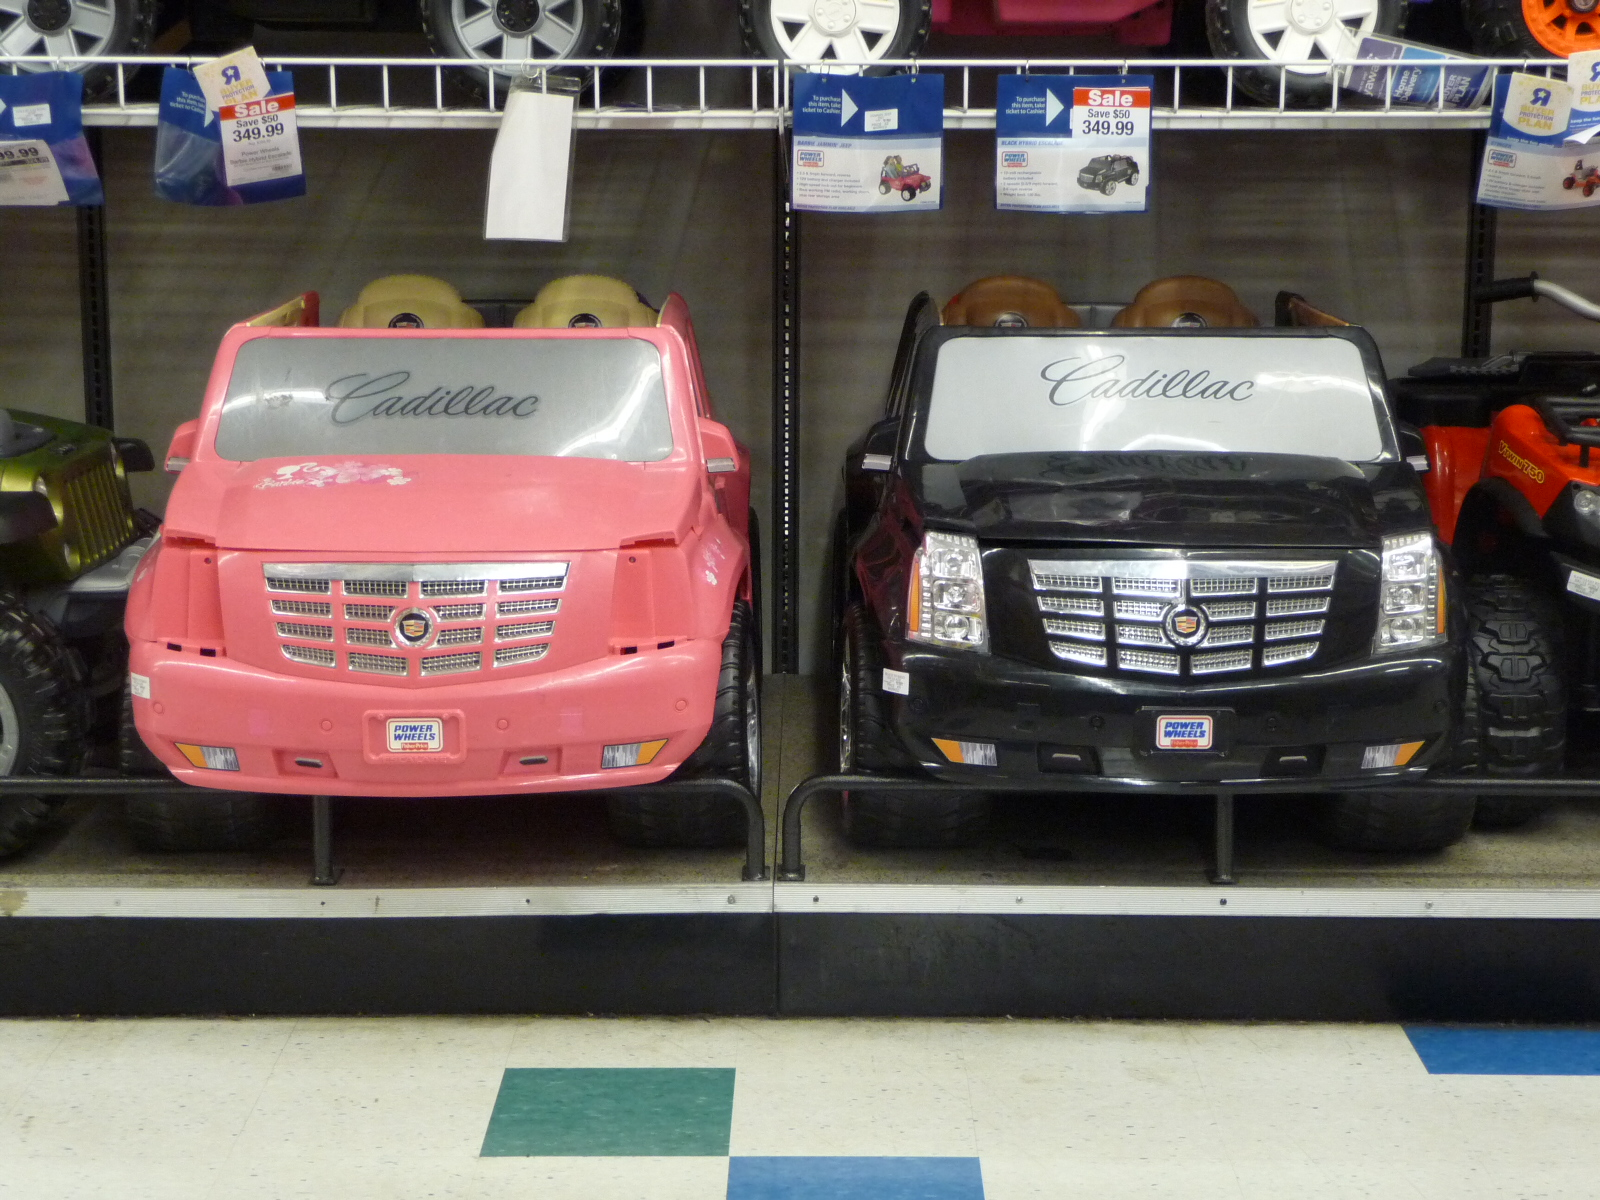 Toys R Us Toy Cars : Japanese bento food canadian life and chihuahua toys r